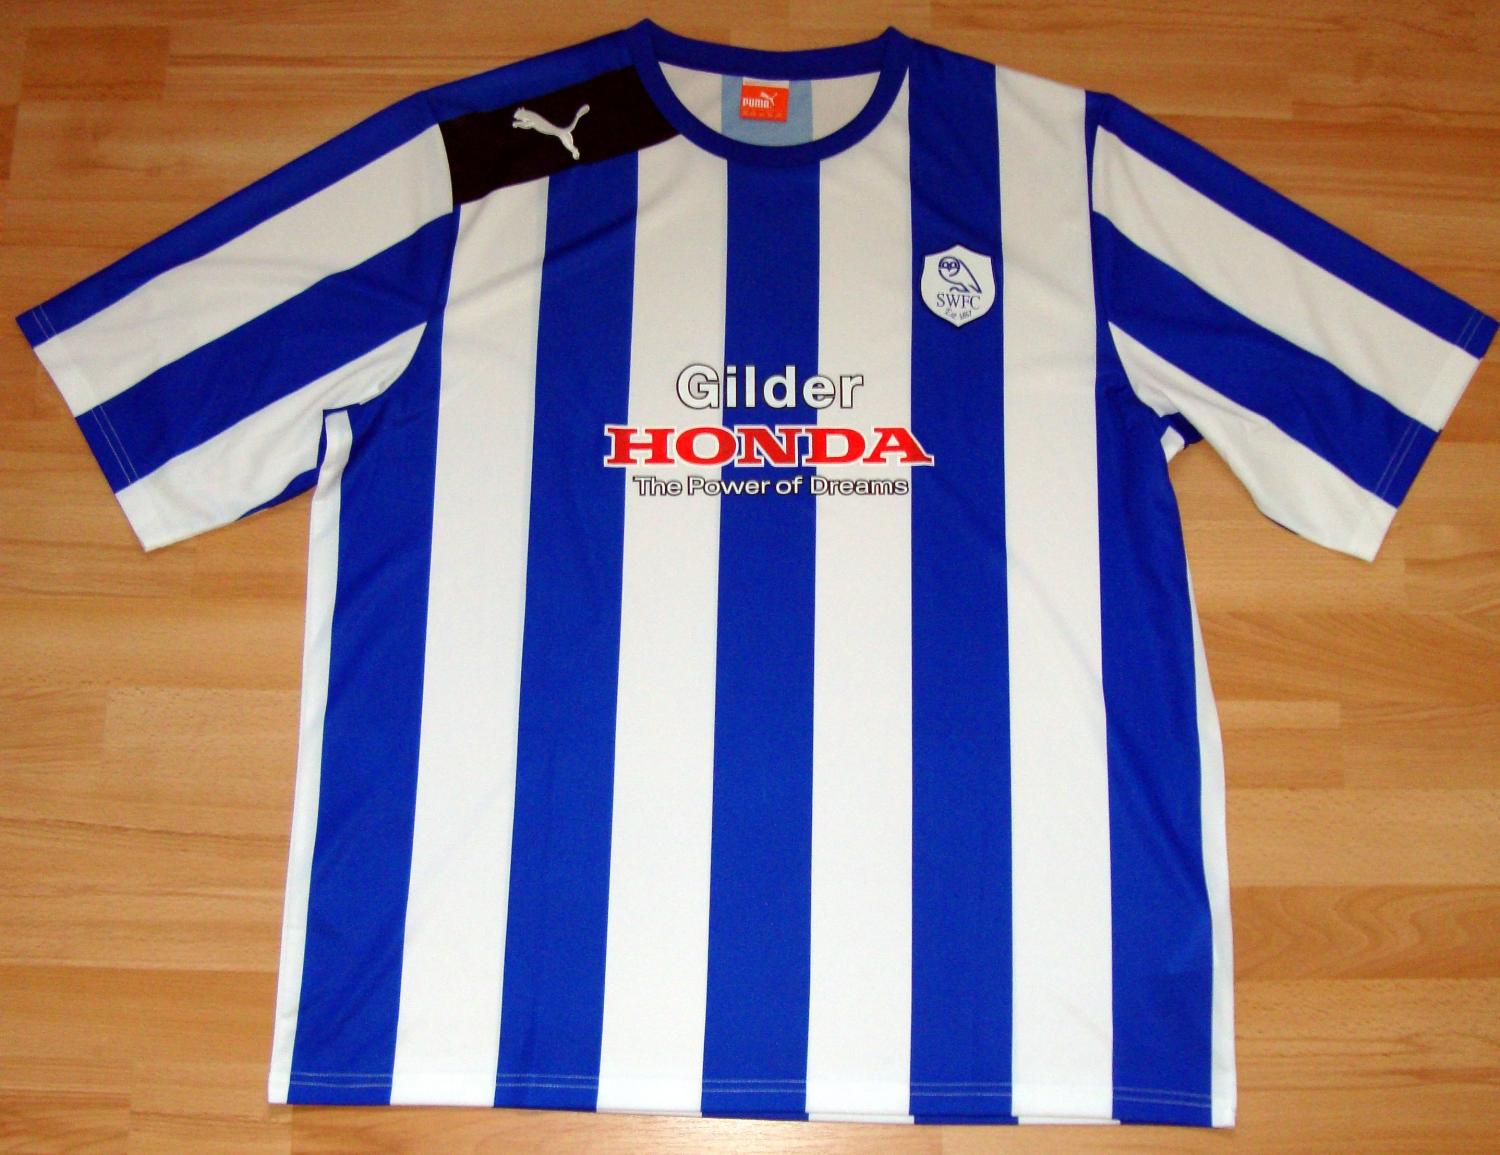 Chùm ảnh: Sheffield Wednesday jersey (12)